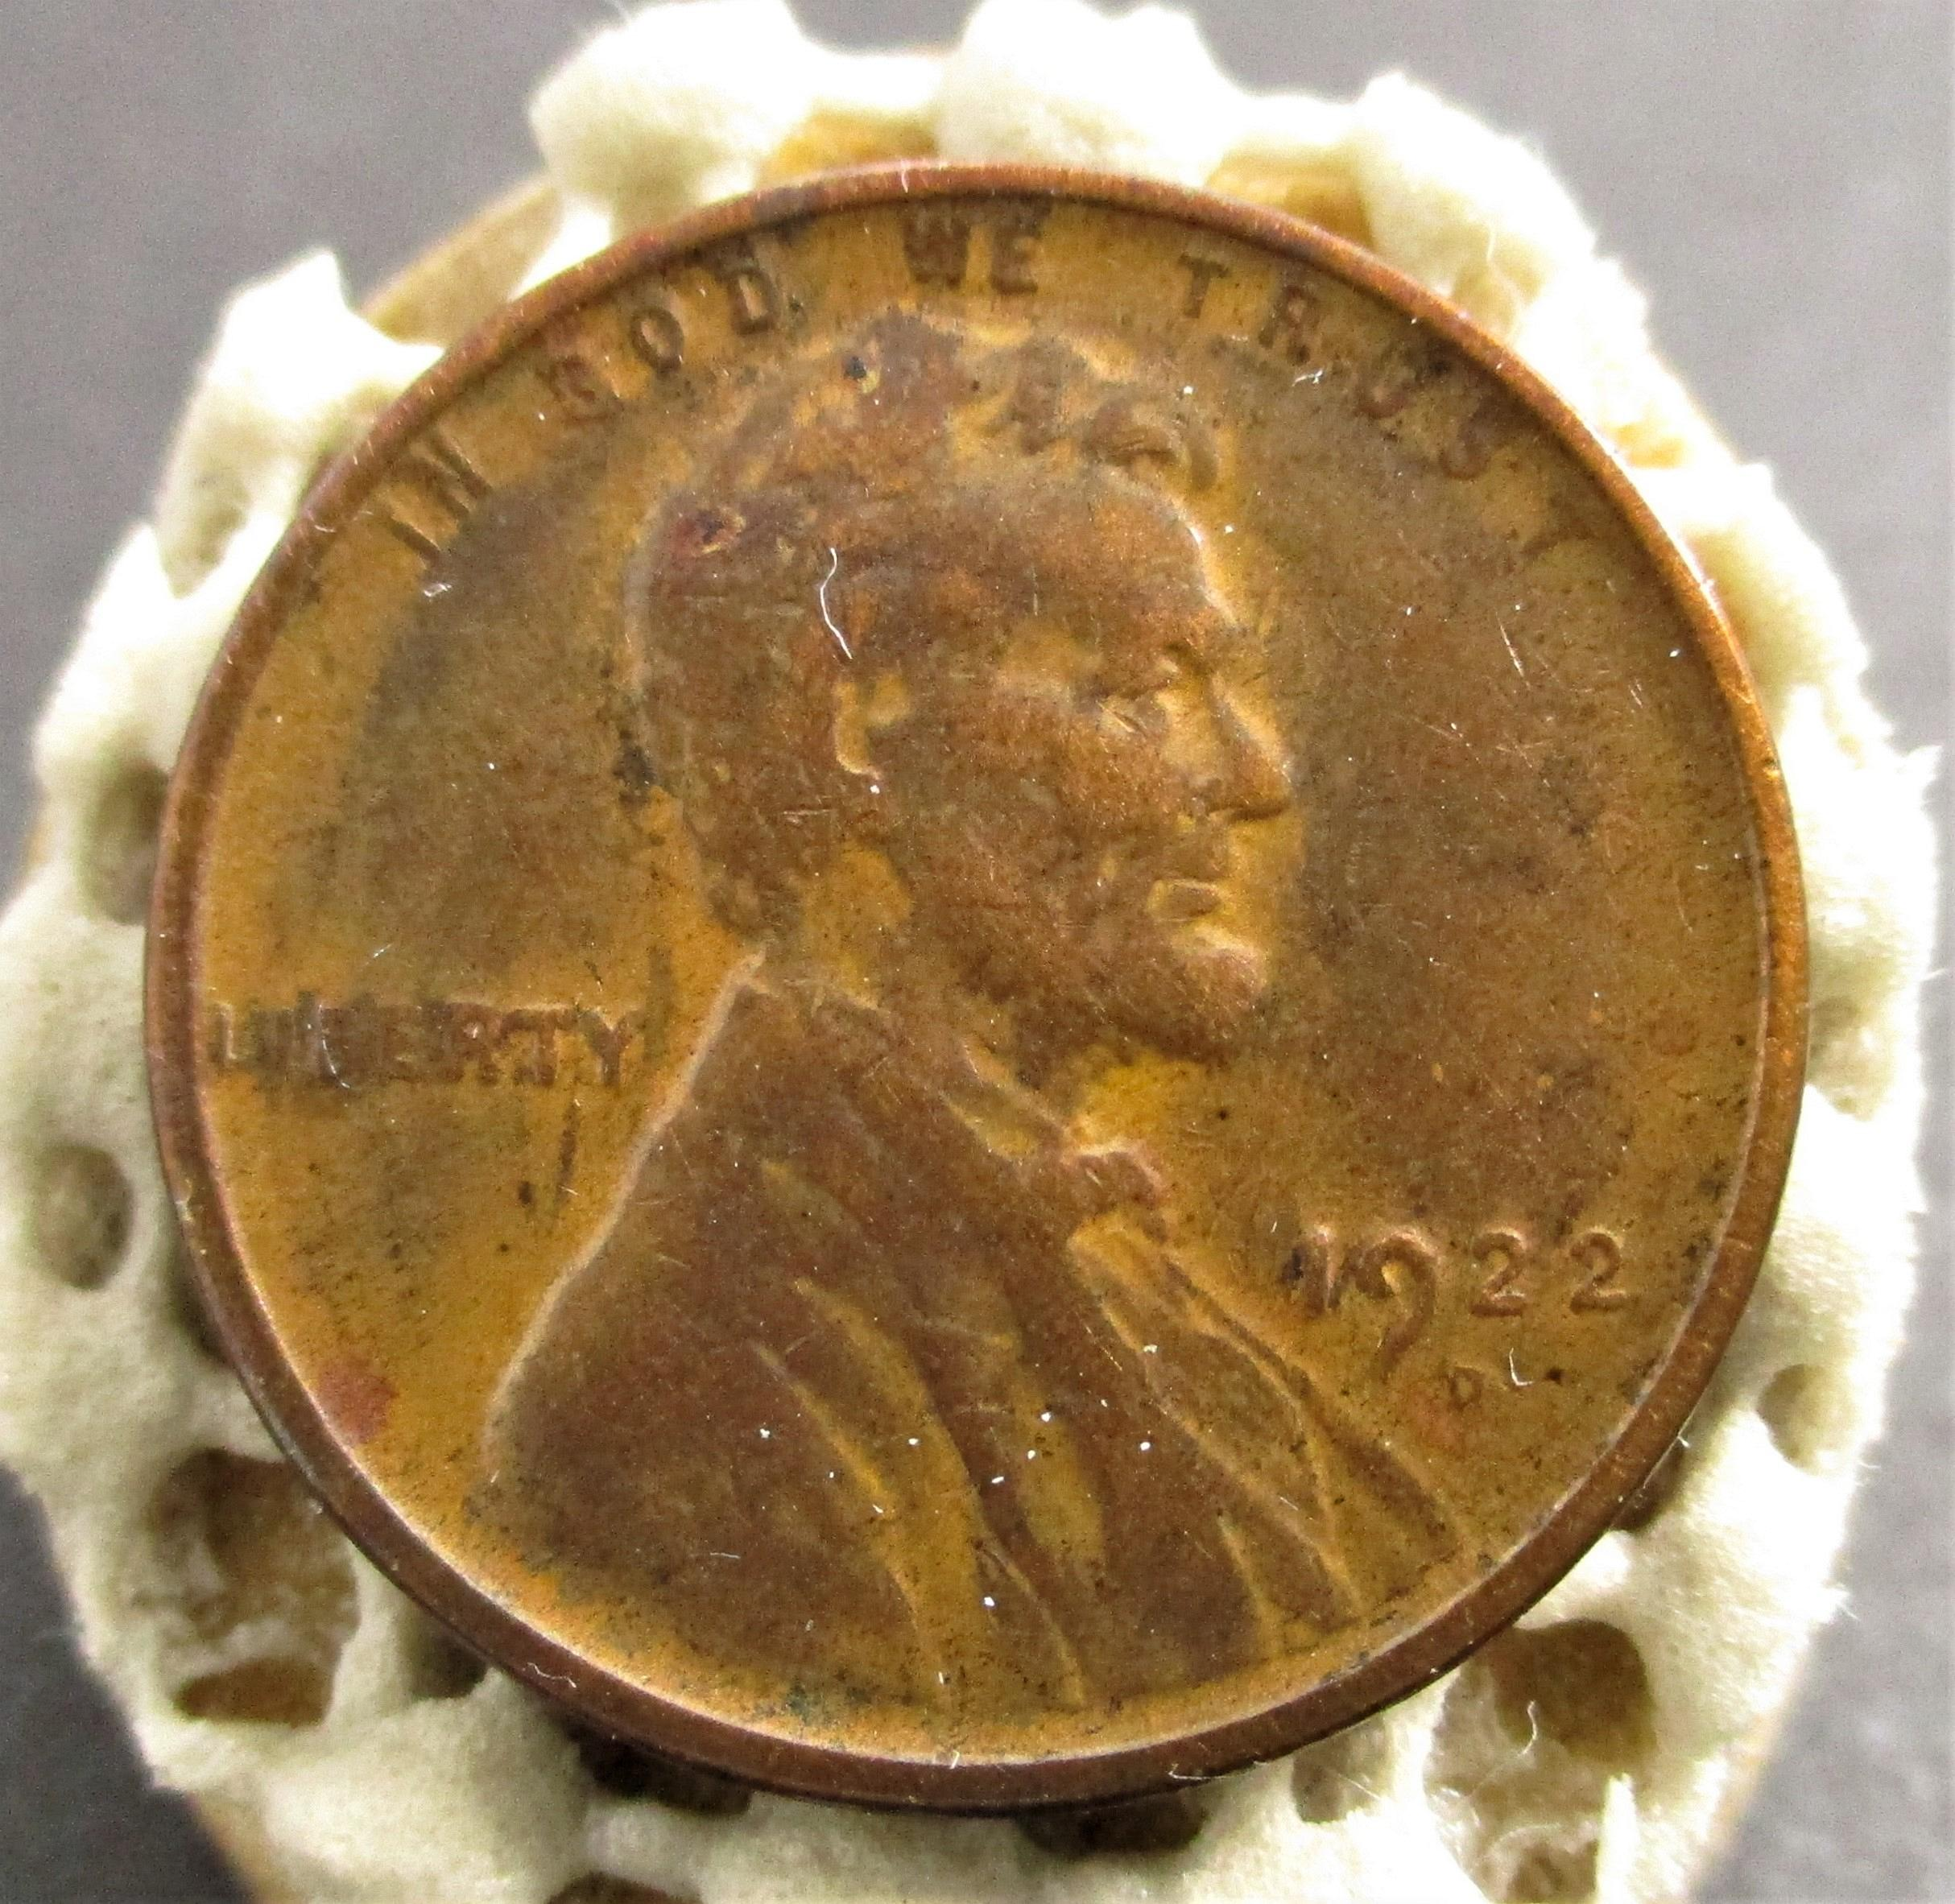 1922 WEAK D LINCOLN WHEAT PENNY